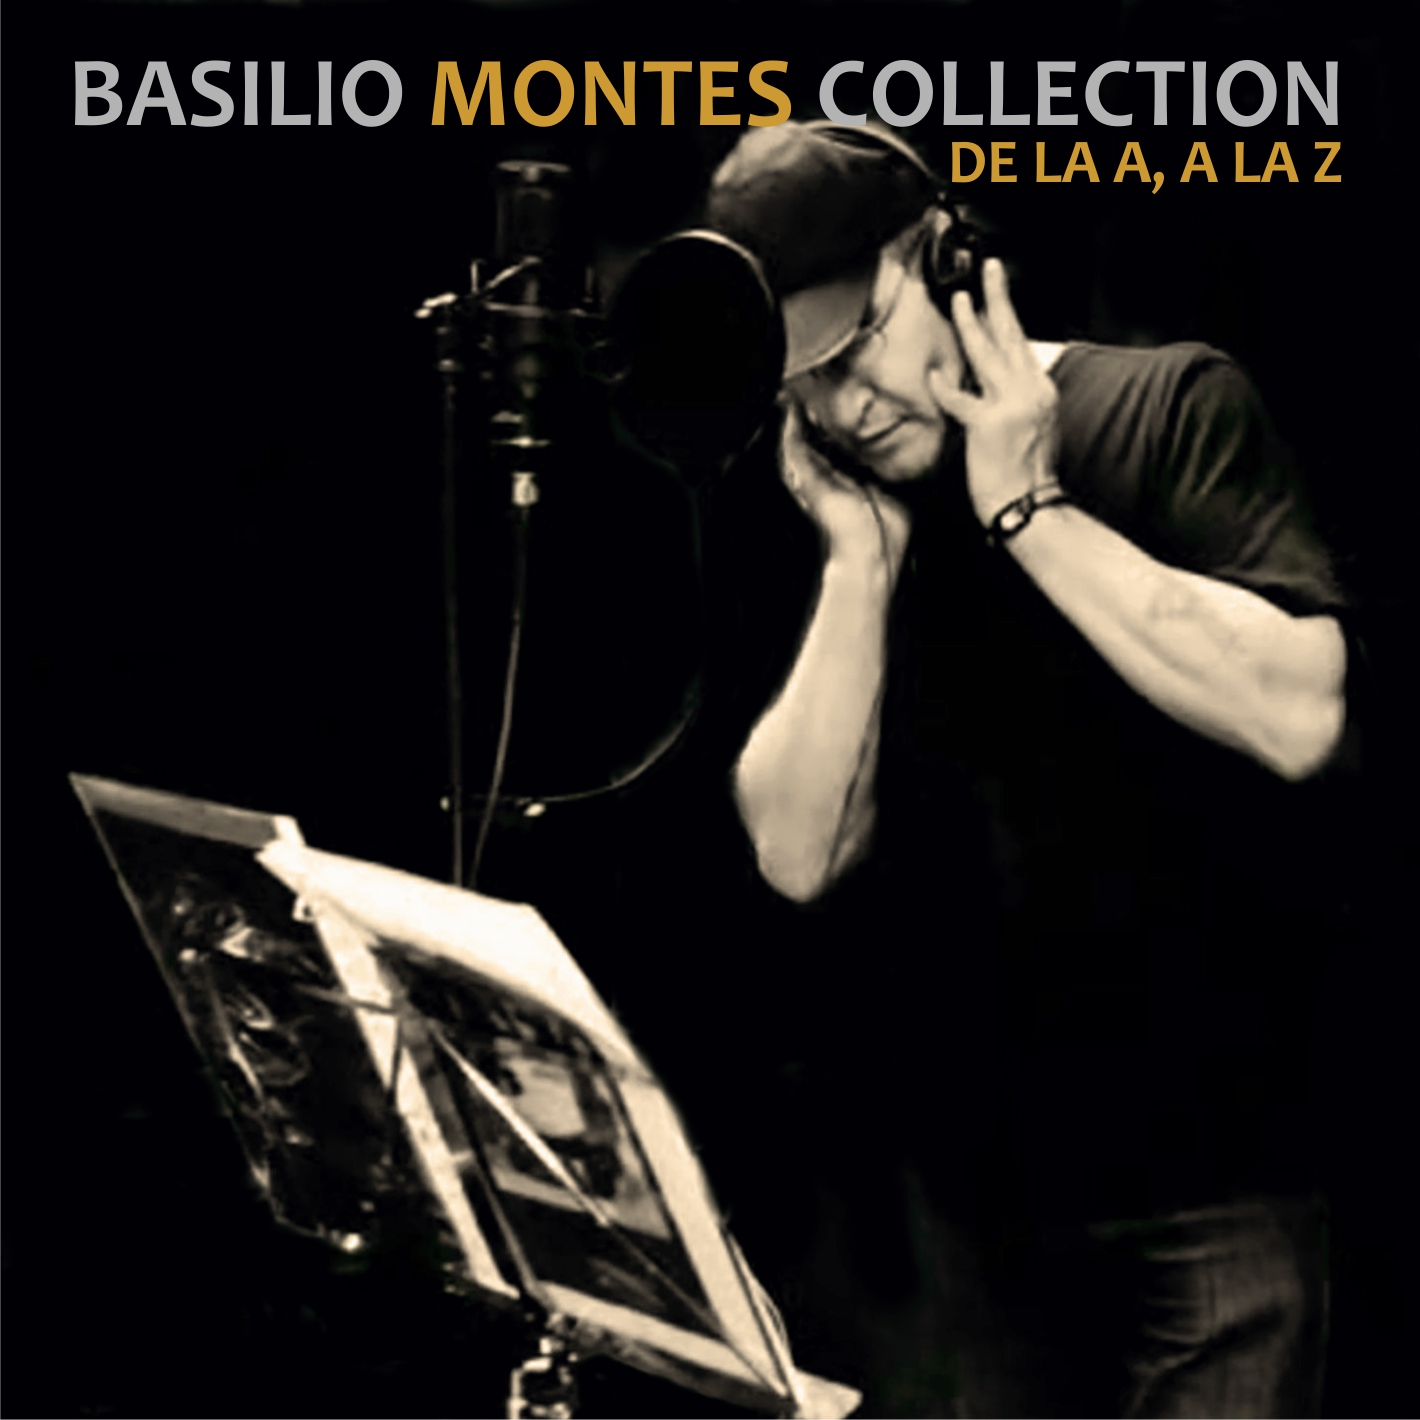 Basilio Montes Collection